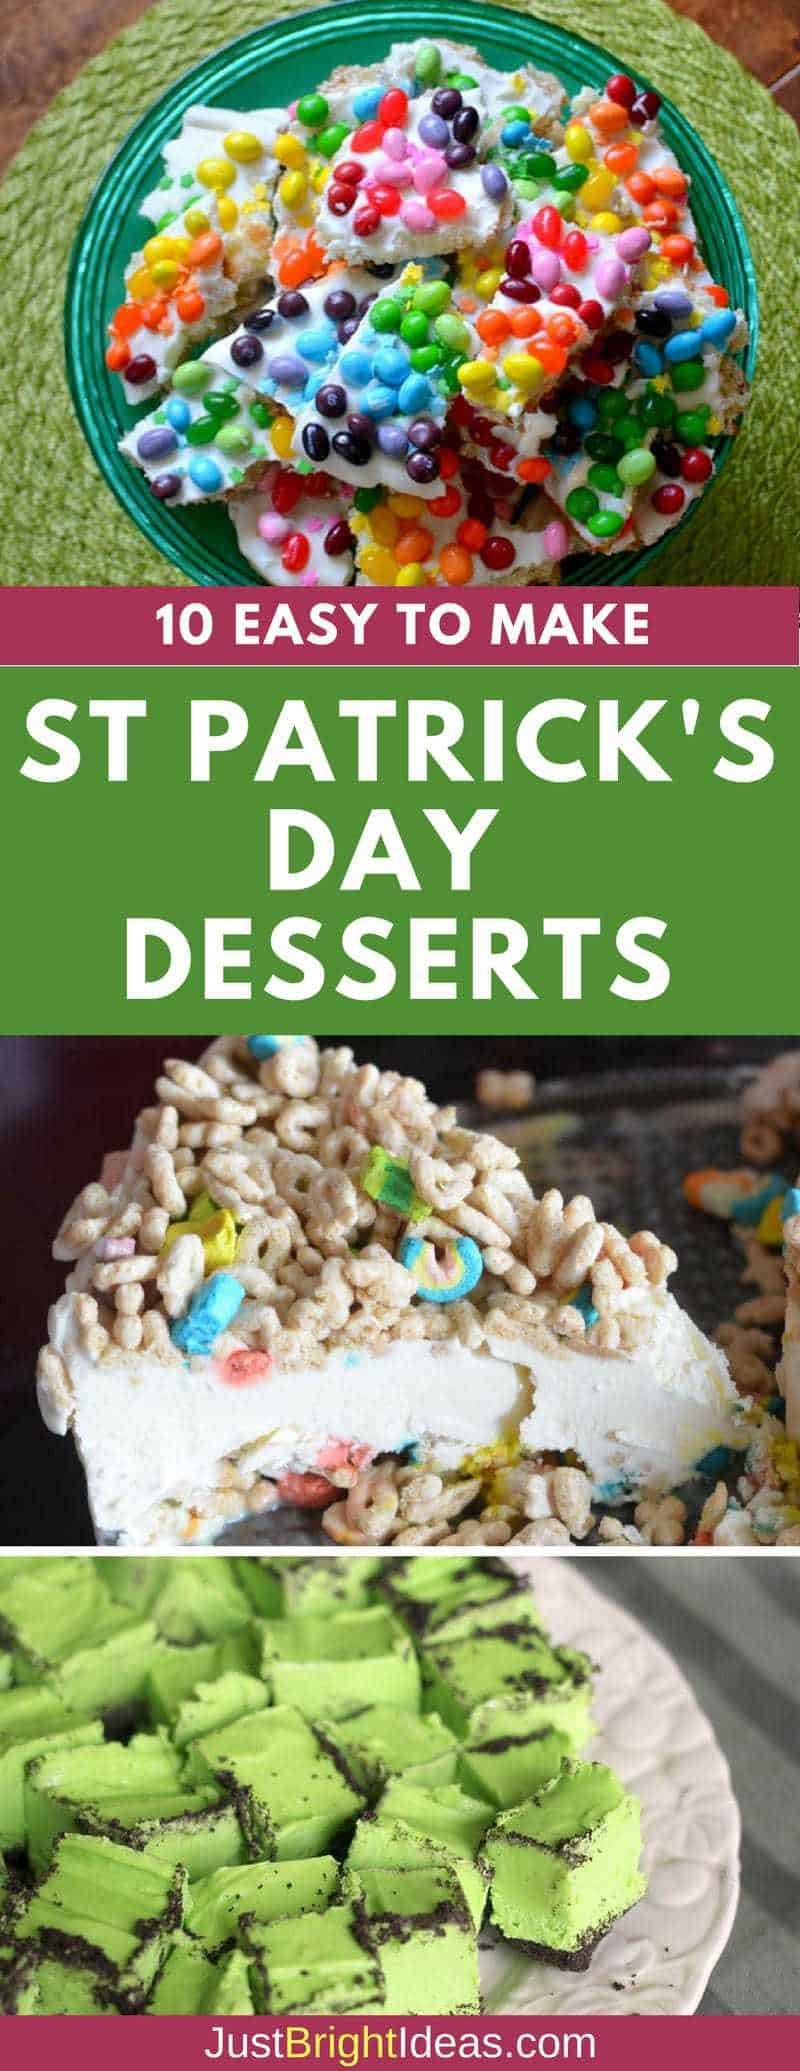 Easy to Make St Patricks Day Desserts Pinterest